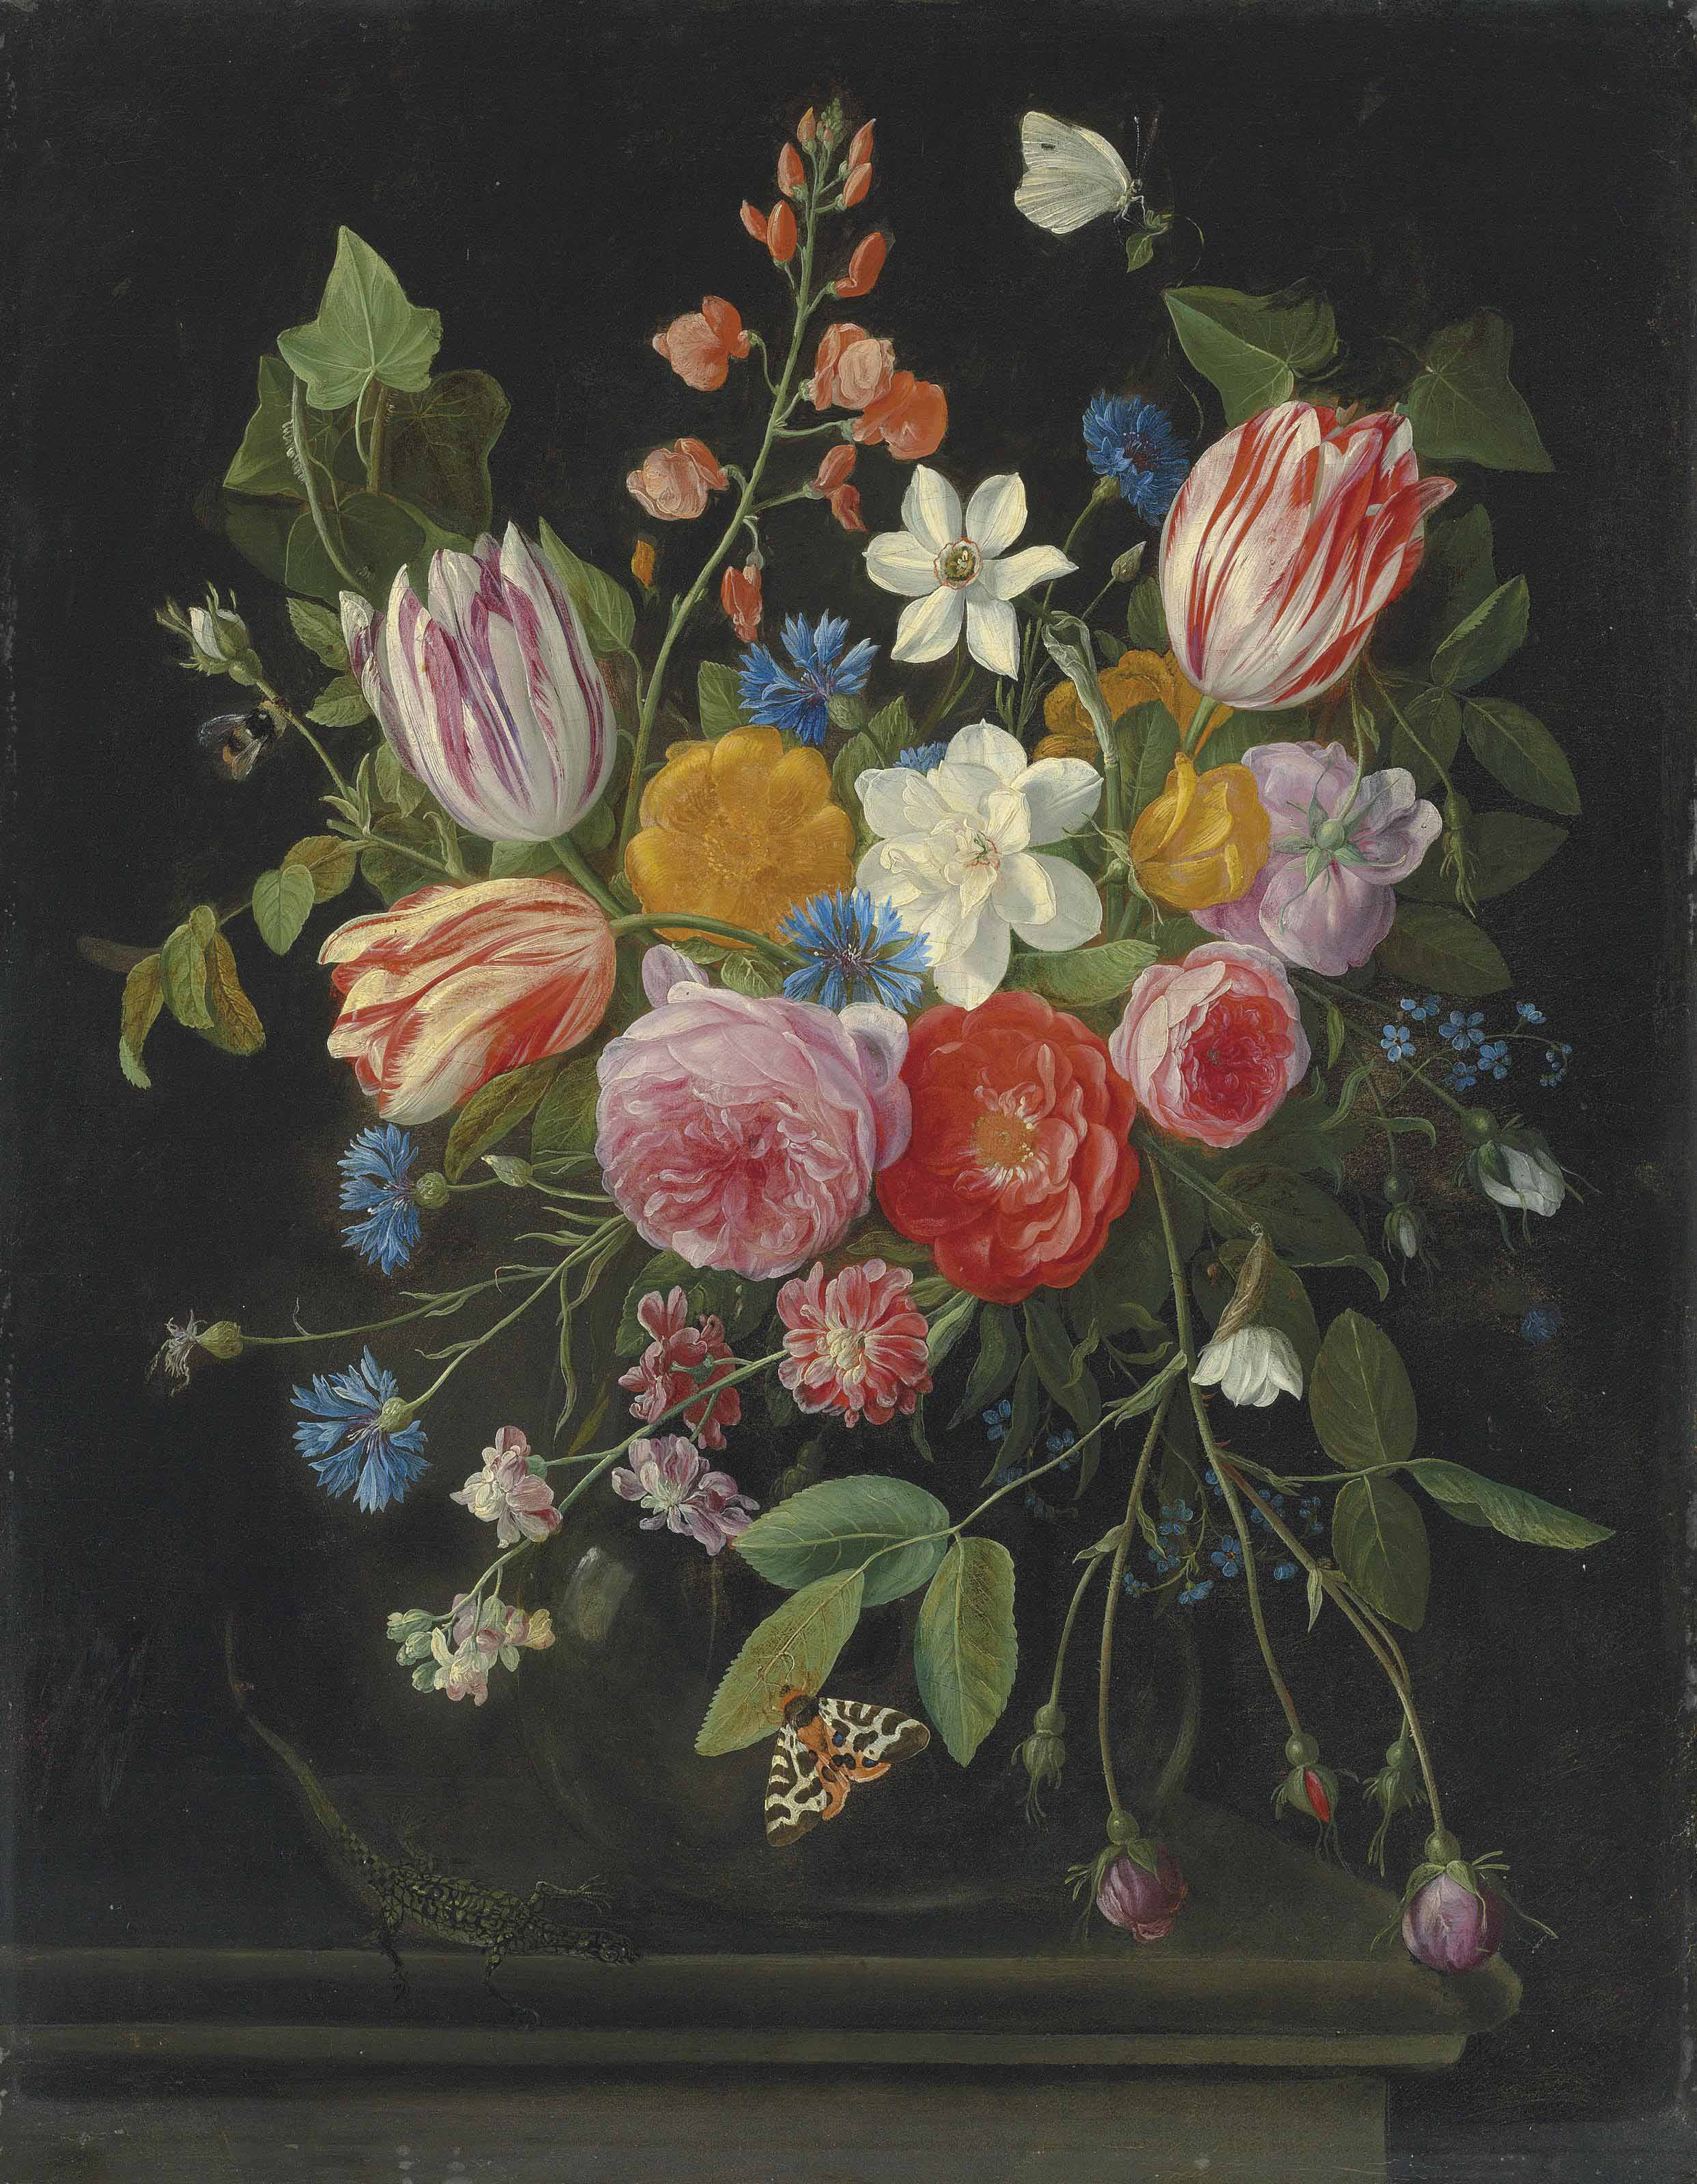 Tulips, peonies, chicory, carnations, cherry blossom and other flowers in a glass vase, with butterflies, a bee and a lizard on a ledge